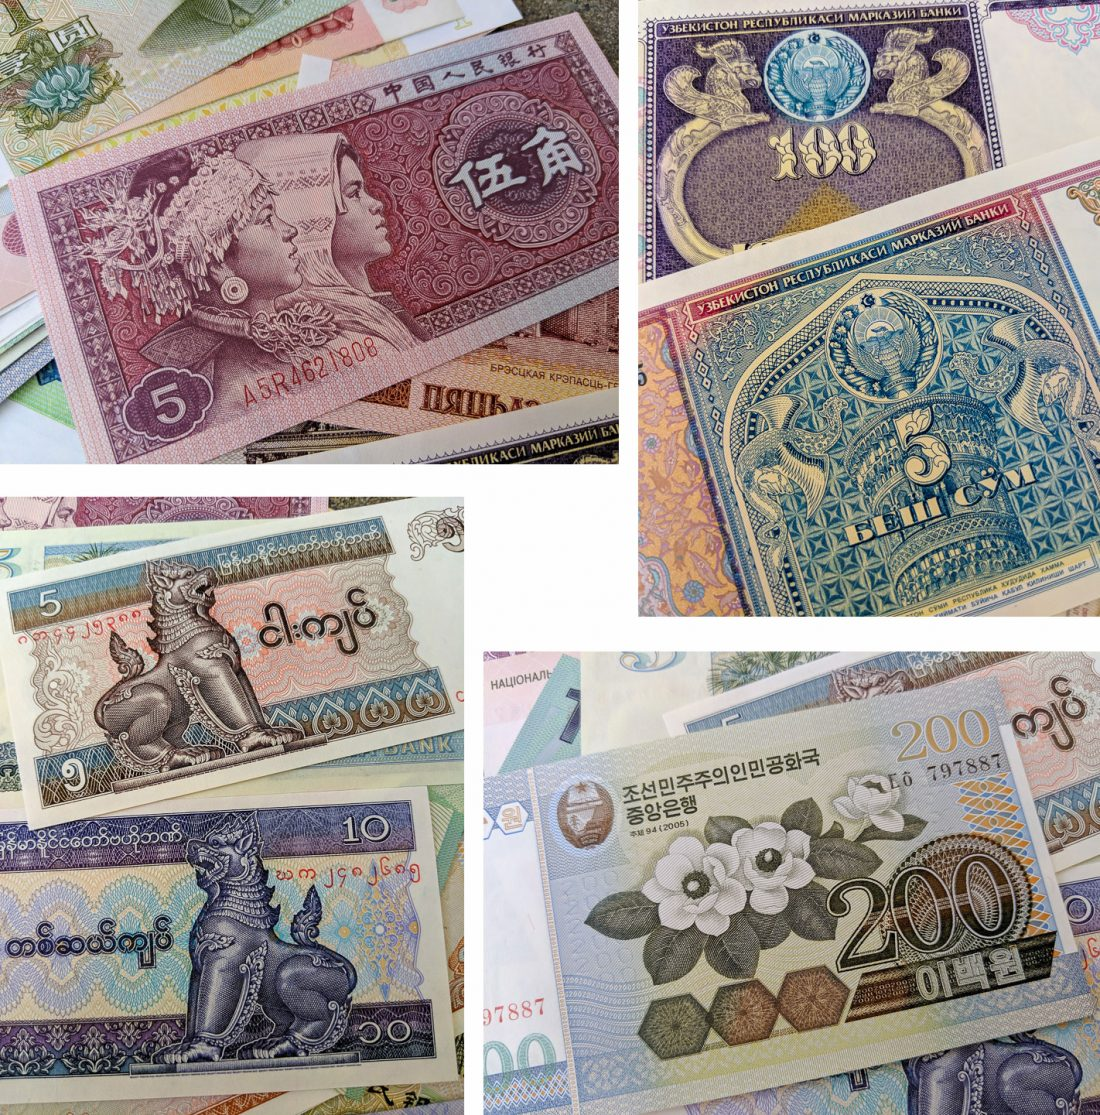 a mosaic of colorful currencies